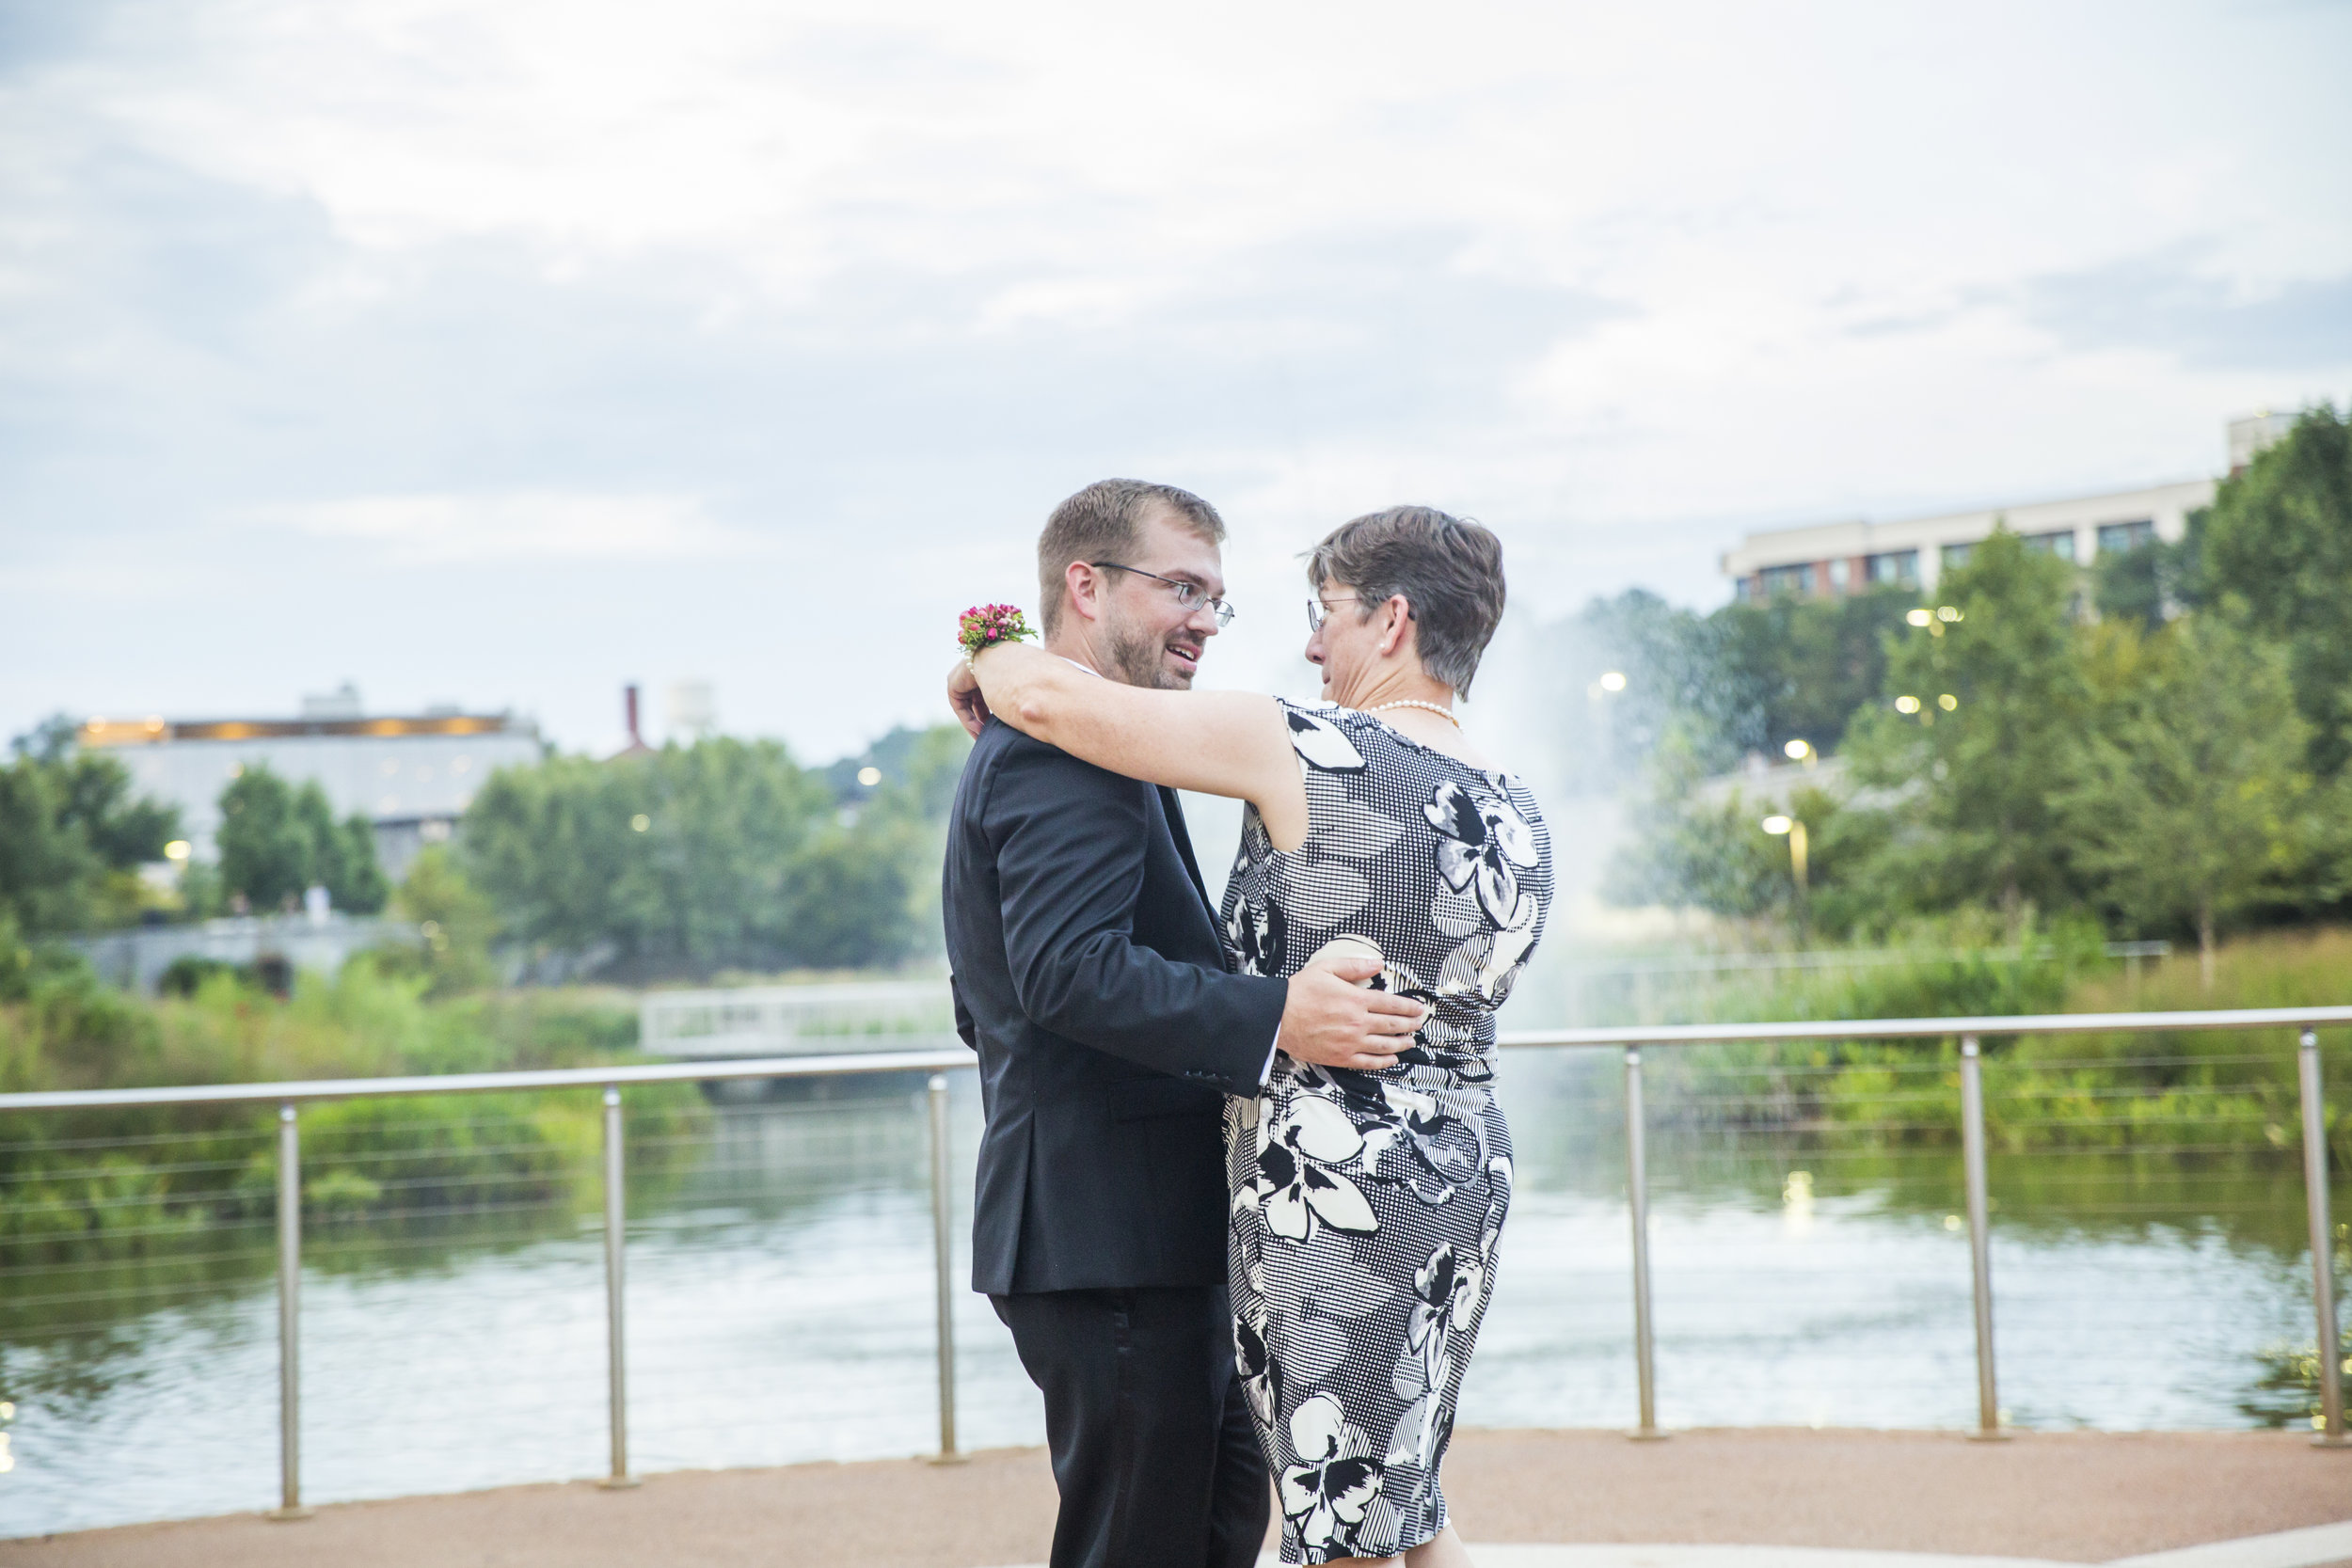 clayton brannon photography (71 of 180).JPG